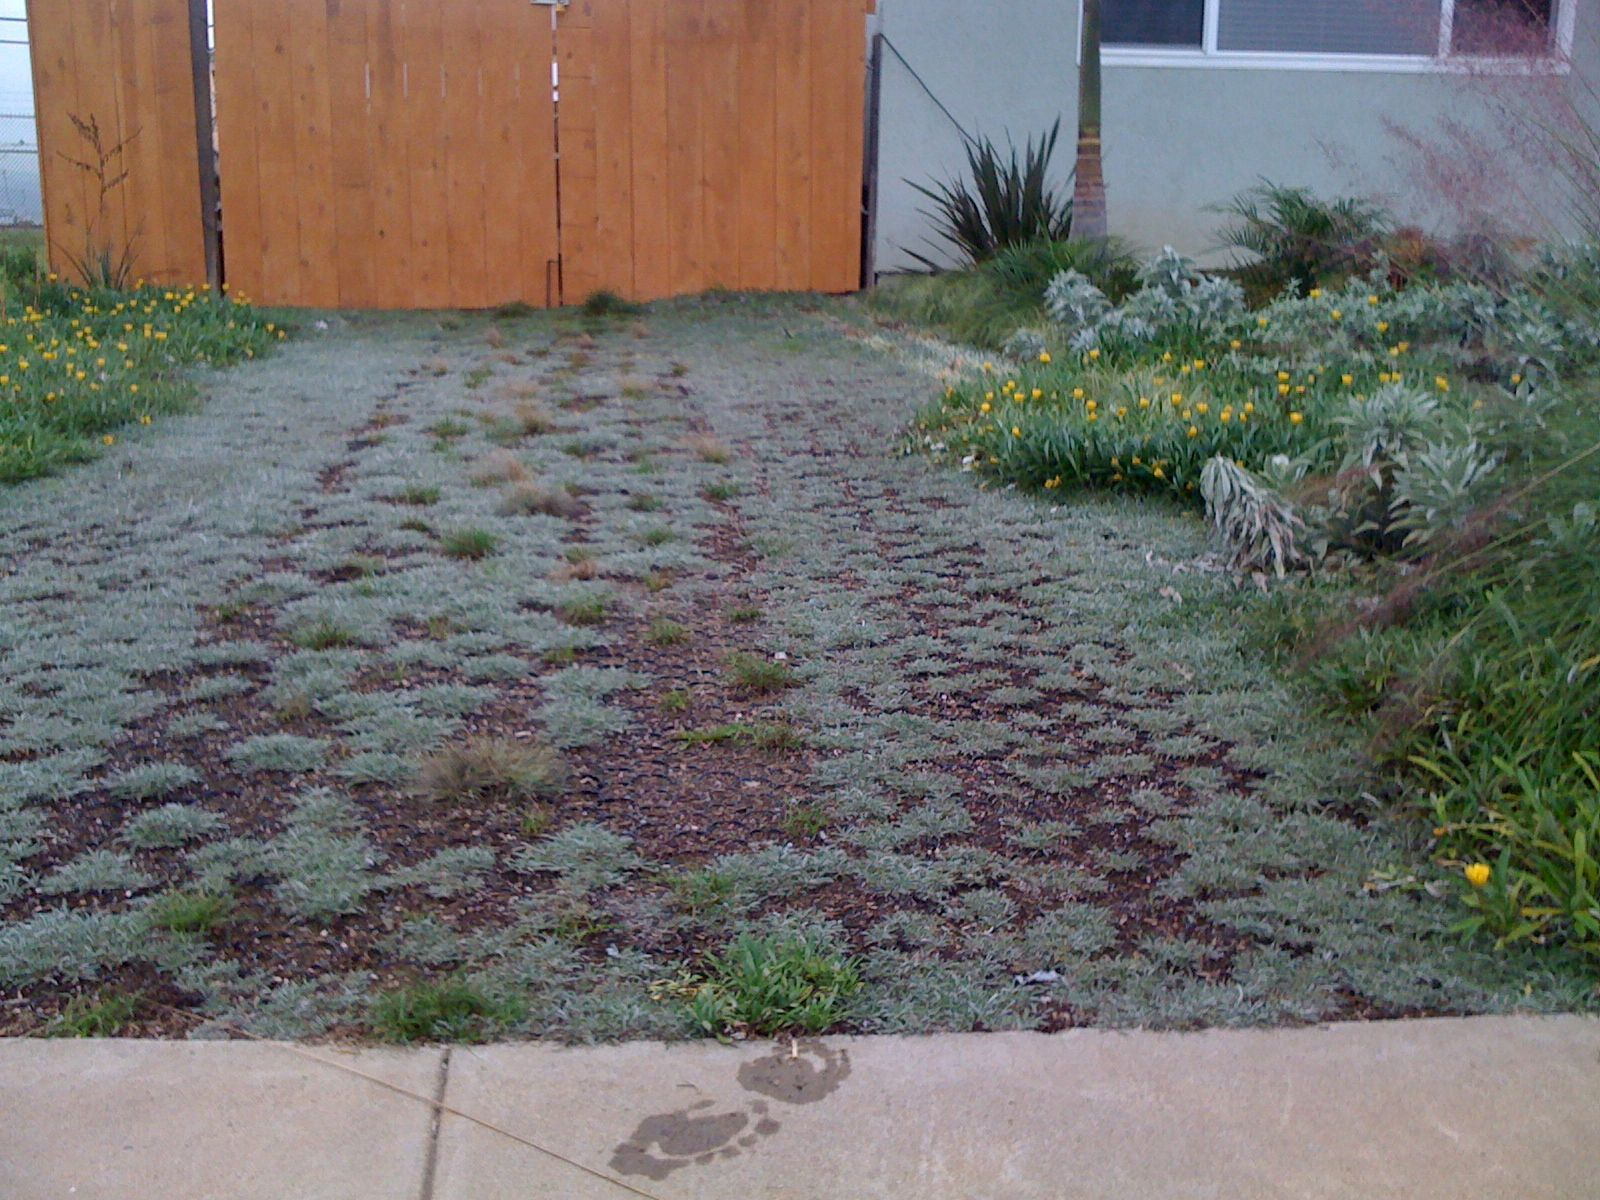 Non-grass and mulch on permeable pavers | Urban garden ... on Non Grass Backyard Ideas id=67945